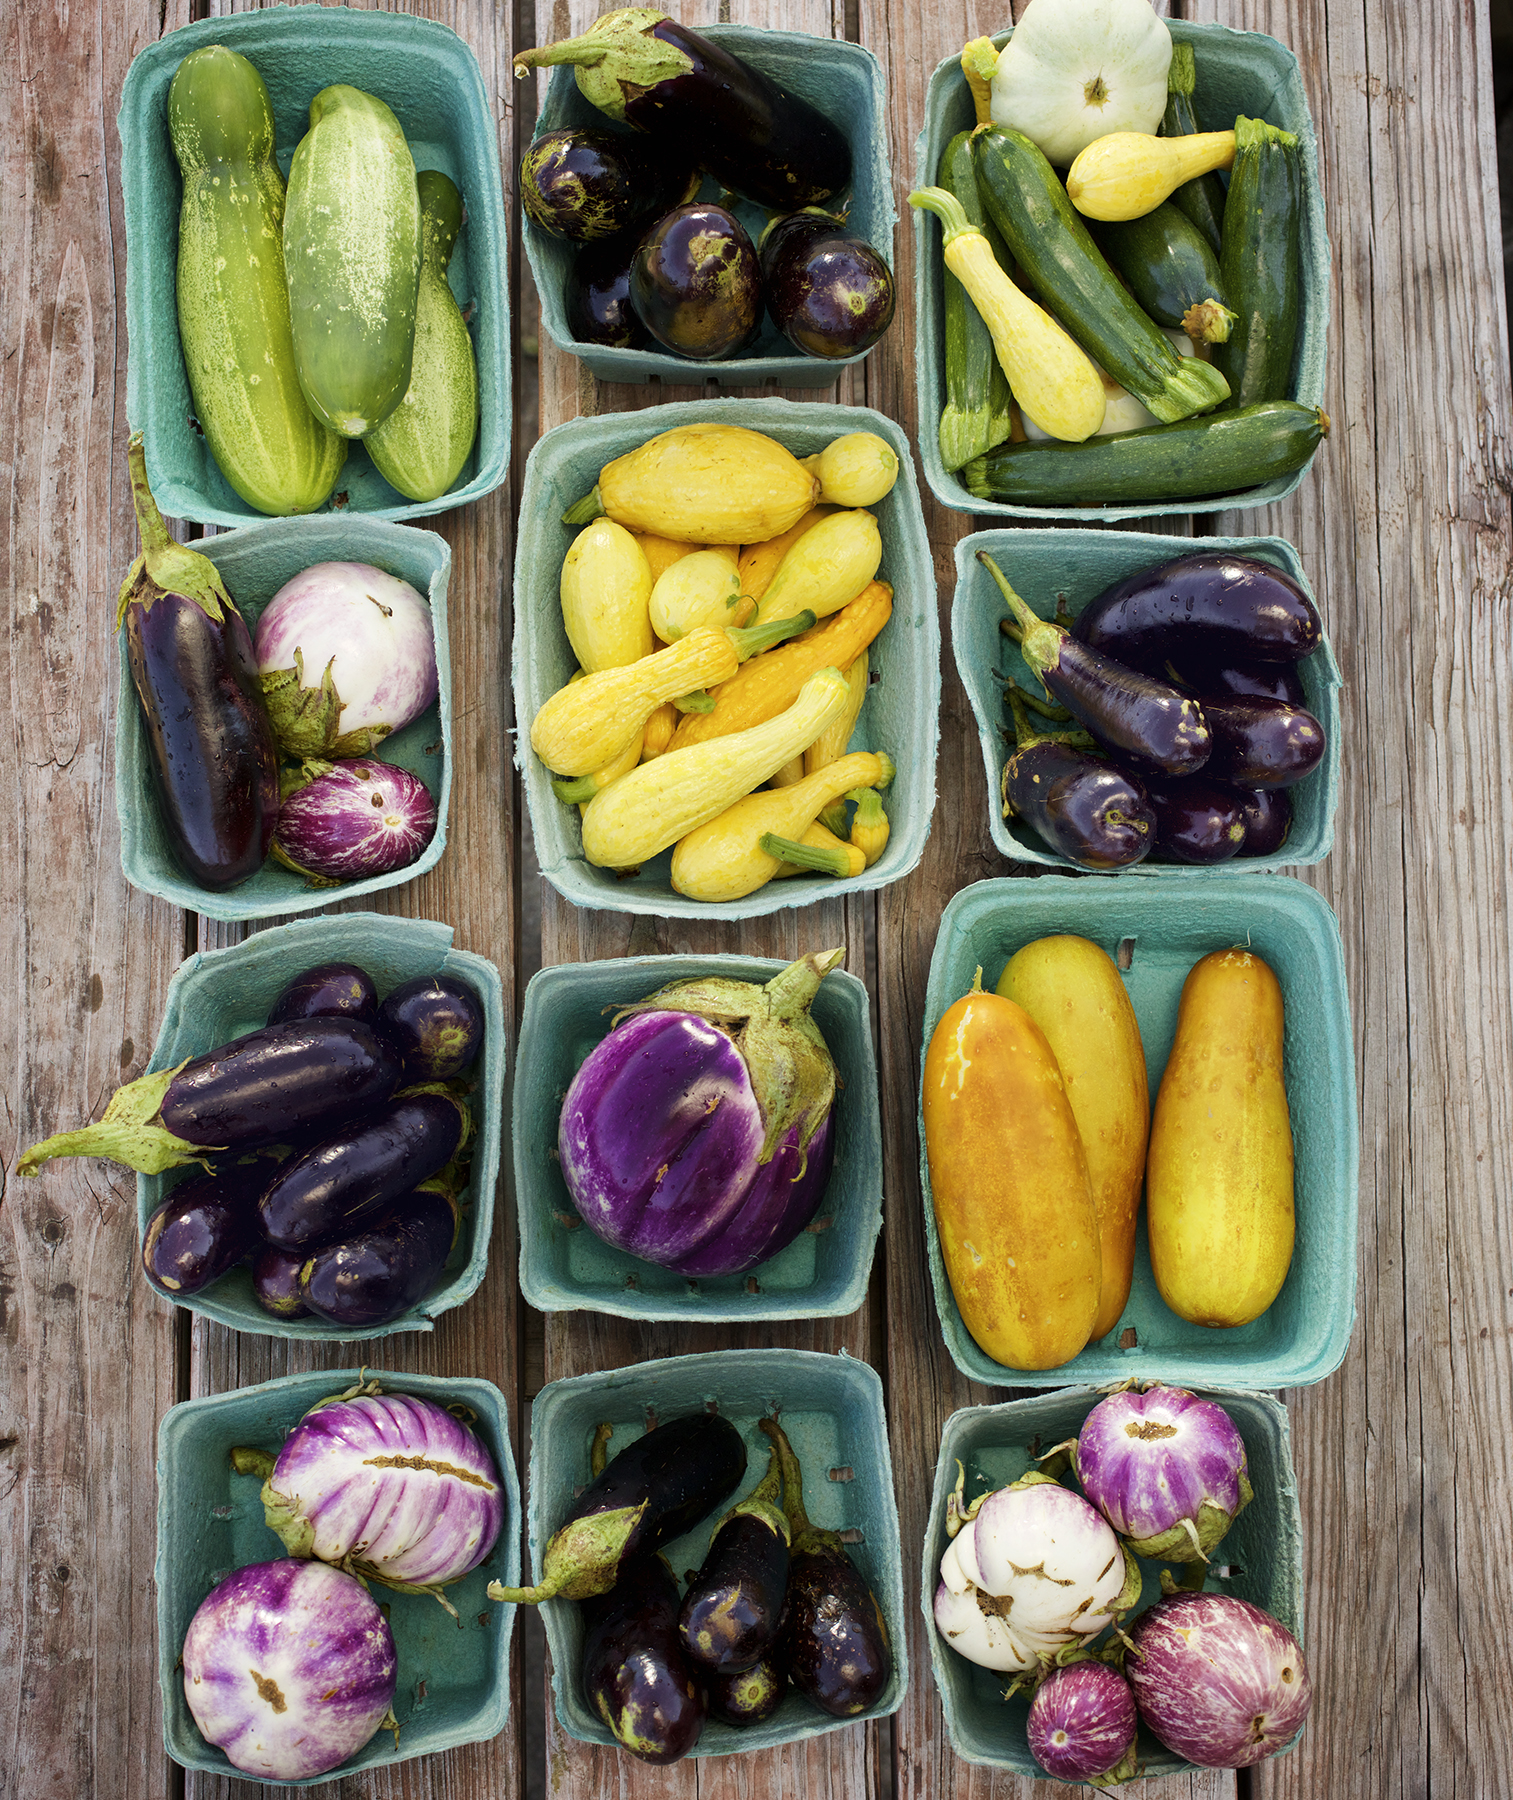 Summer produce in small blue baskets